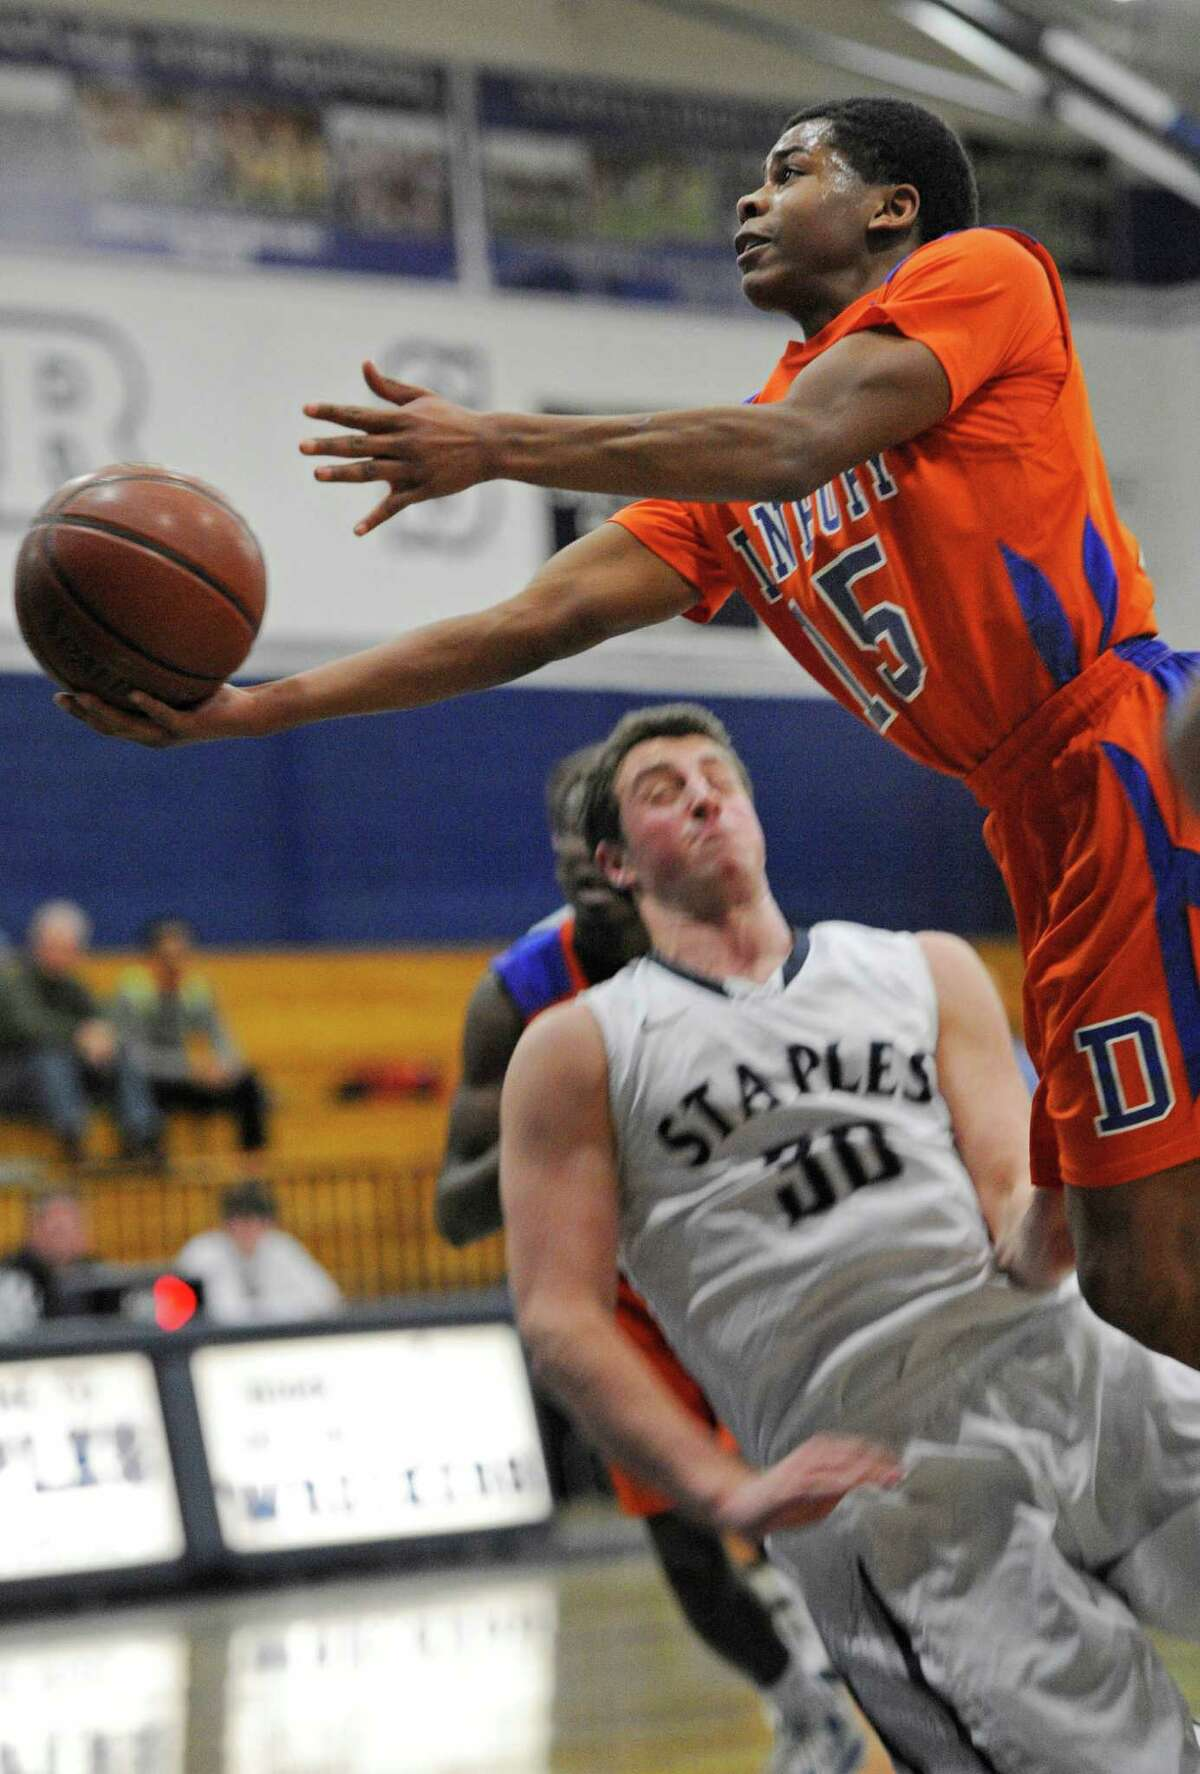 Danbury high school's Tysheen McCrea driving to the basket during a boys basketball game against Staples high school played at Staples, Westport, CT on Wednesday, December,18th, 2013.